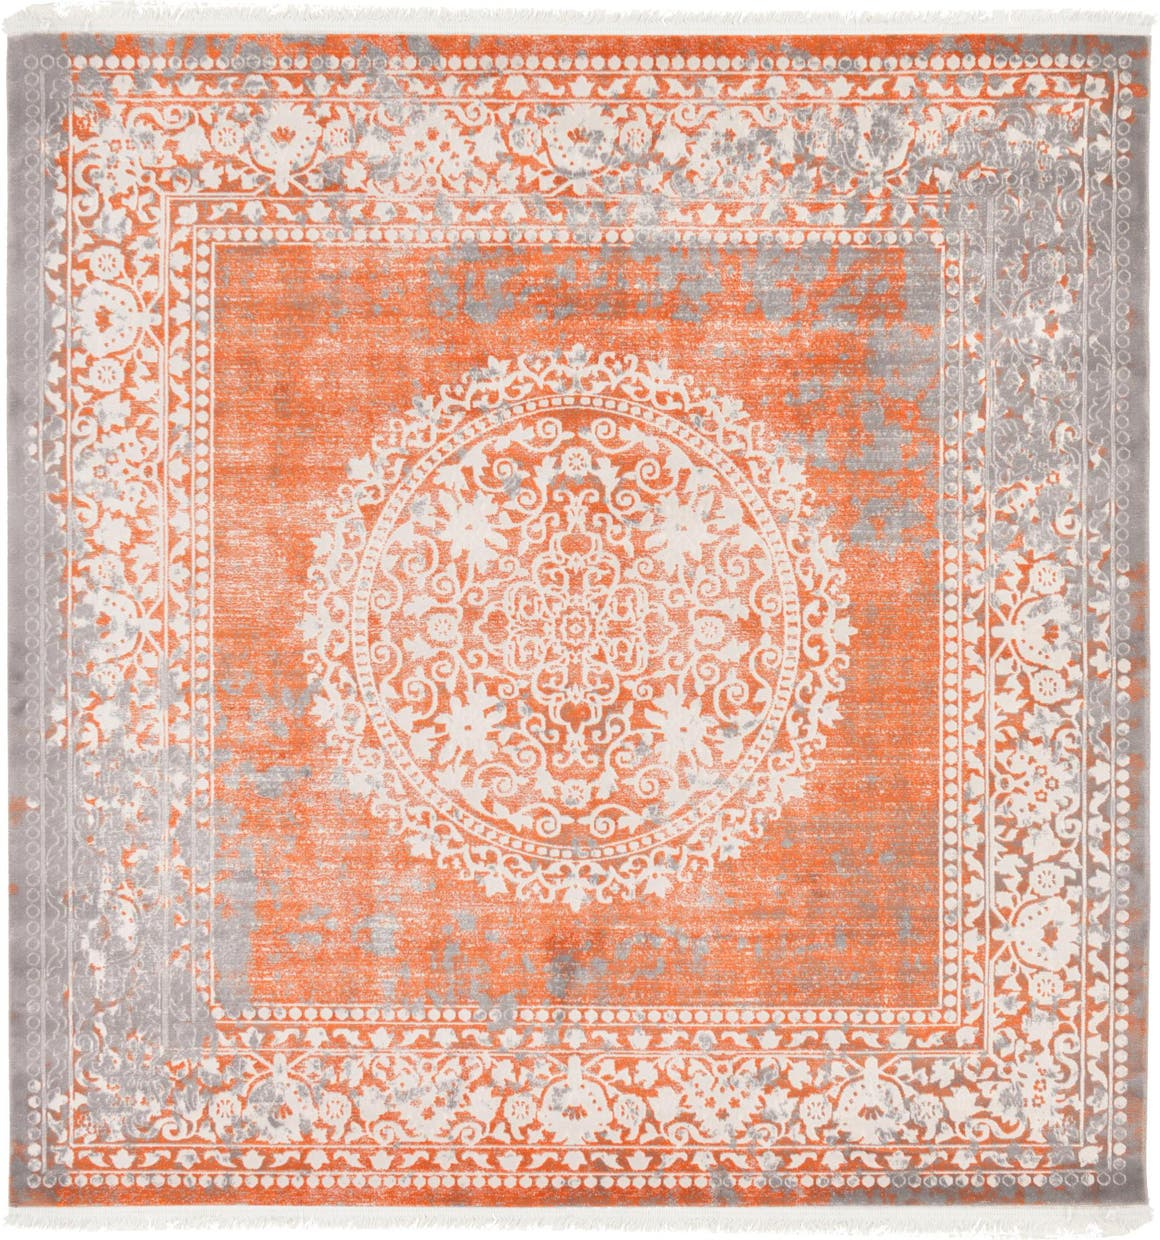 8' x 8' New Vintage Square Rug main image